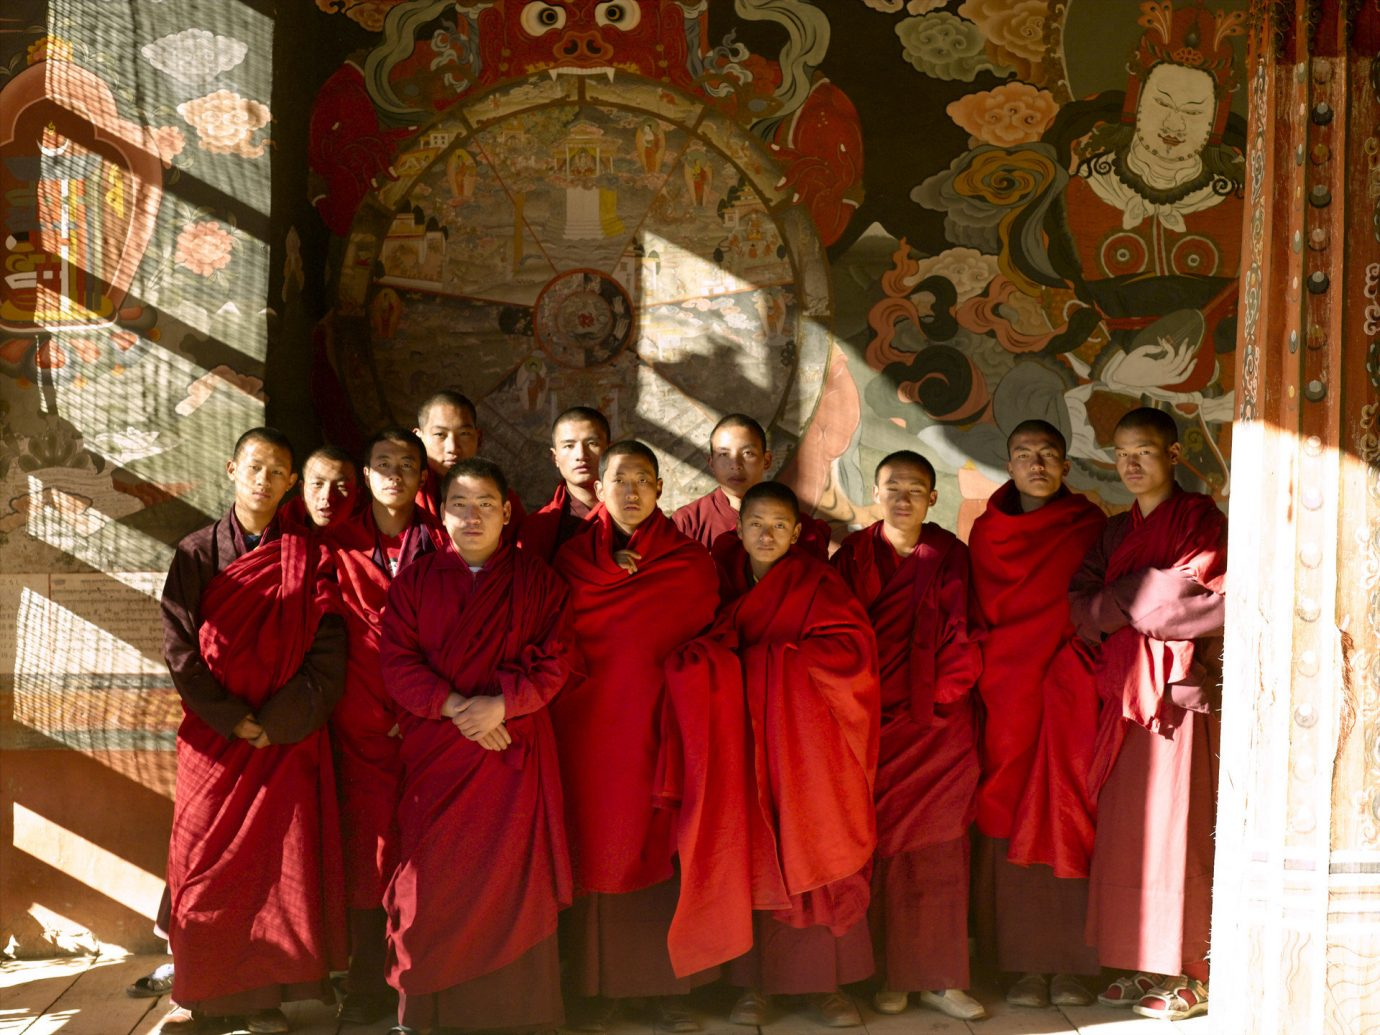 Travel Tips person musician woman red priesthood choir vestment posing group bishop musical ensemble profession temple dancer tradition